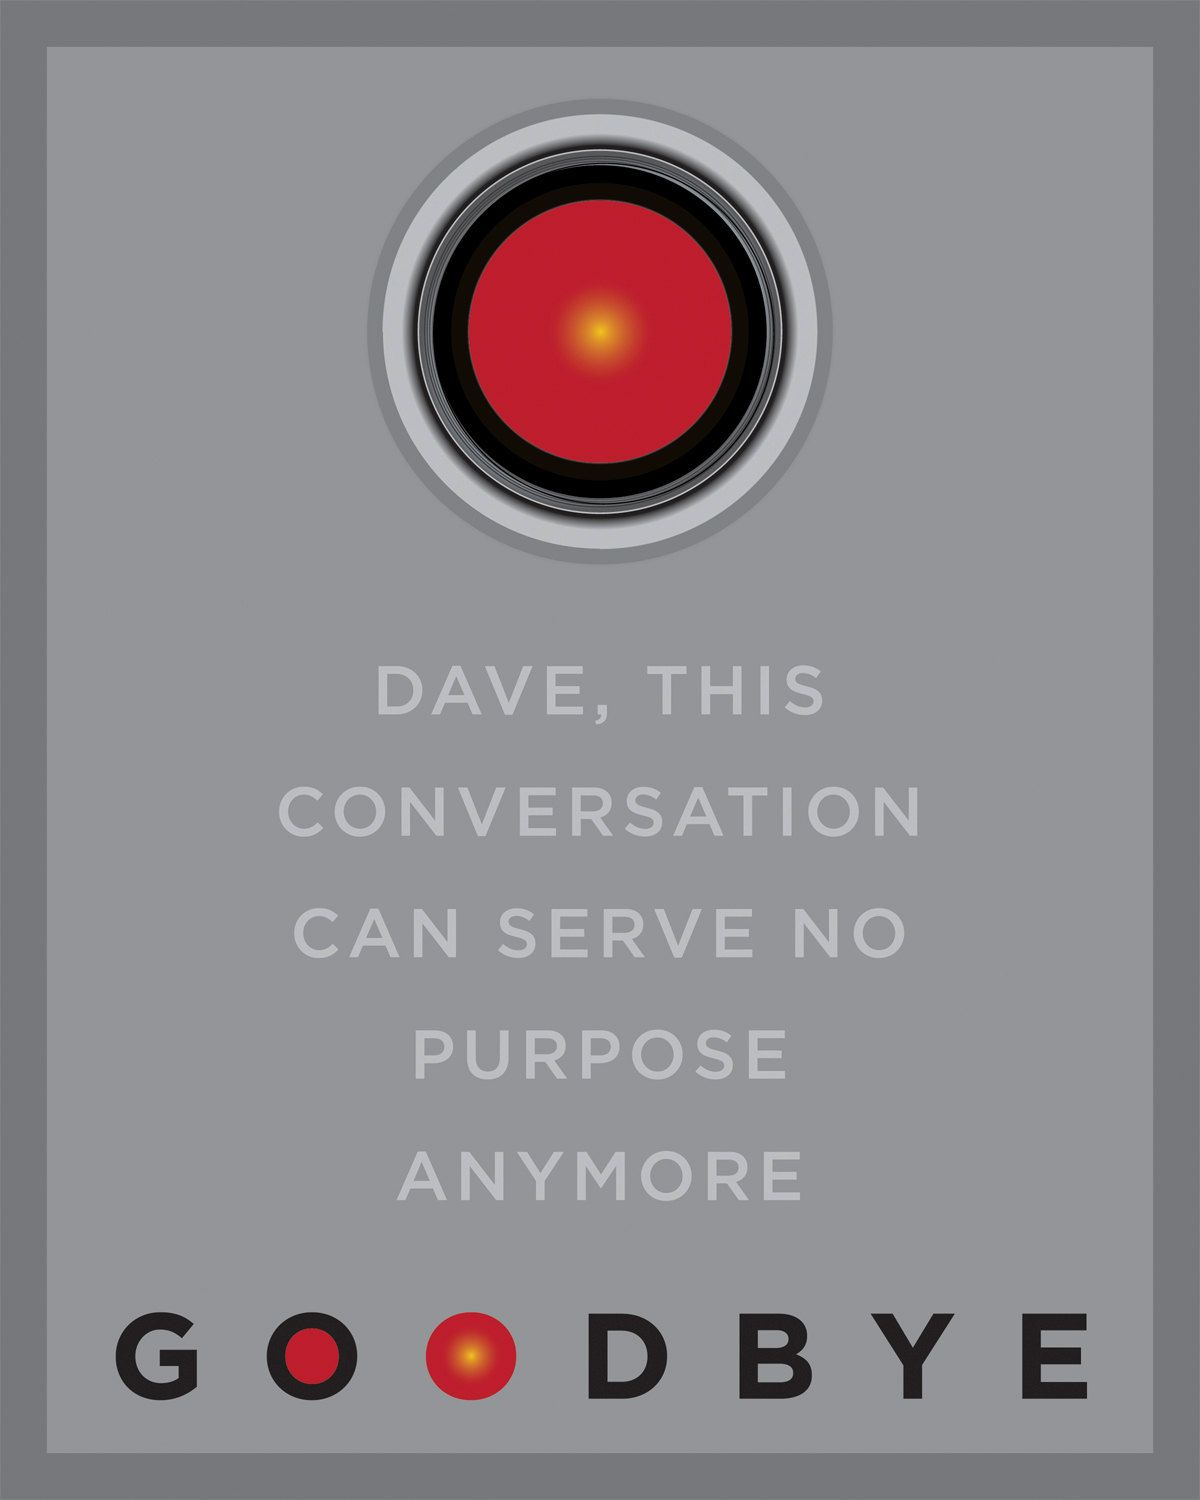 Hal 9000 2001 space odyssey goodbye quote 8x10 inch print